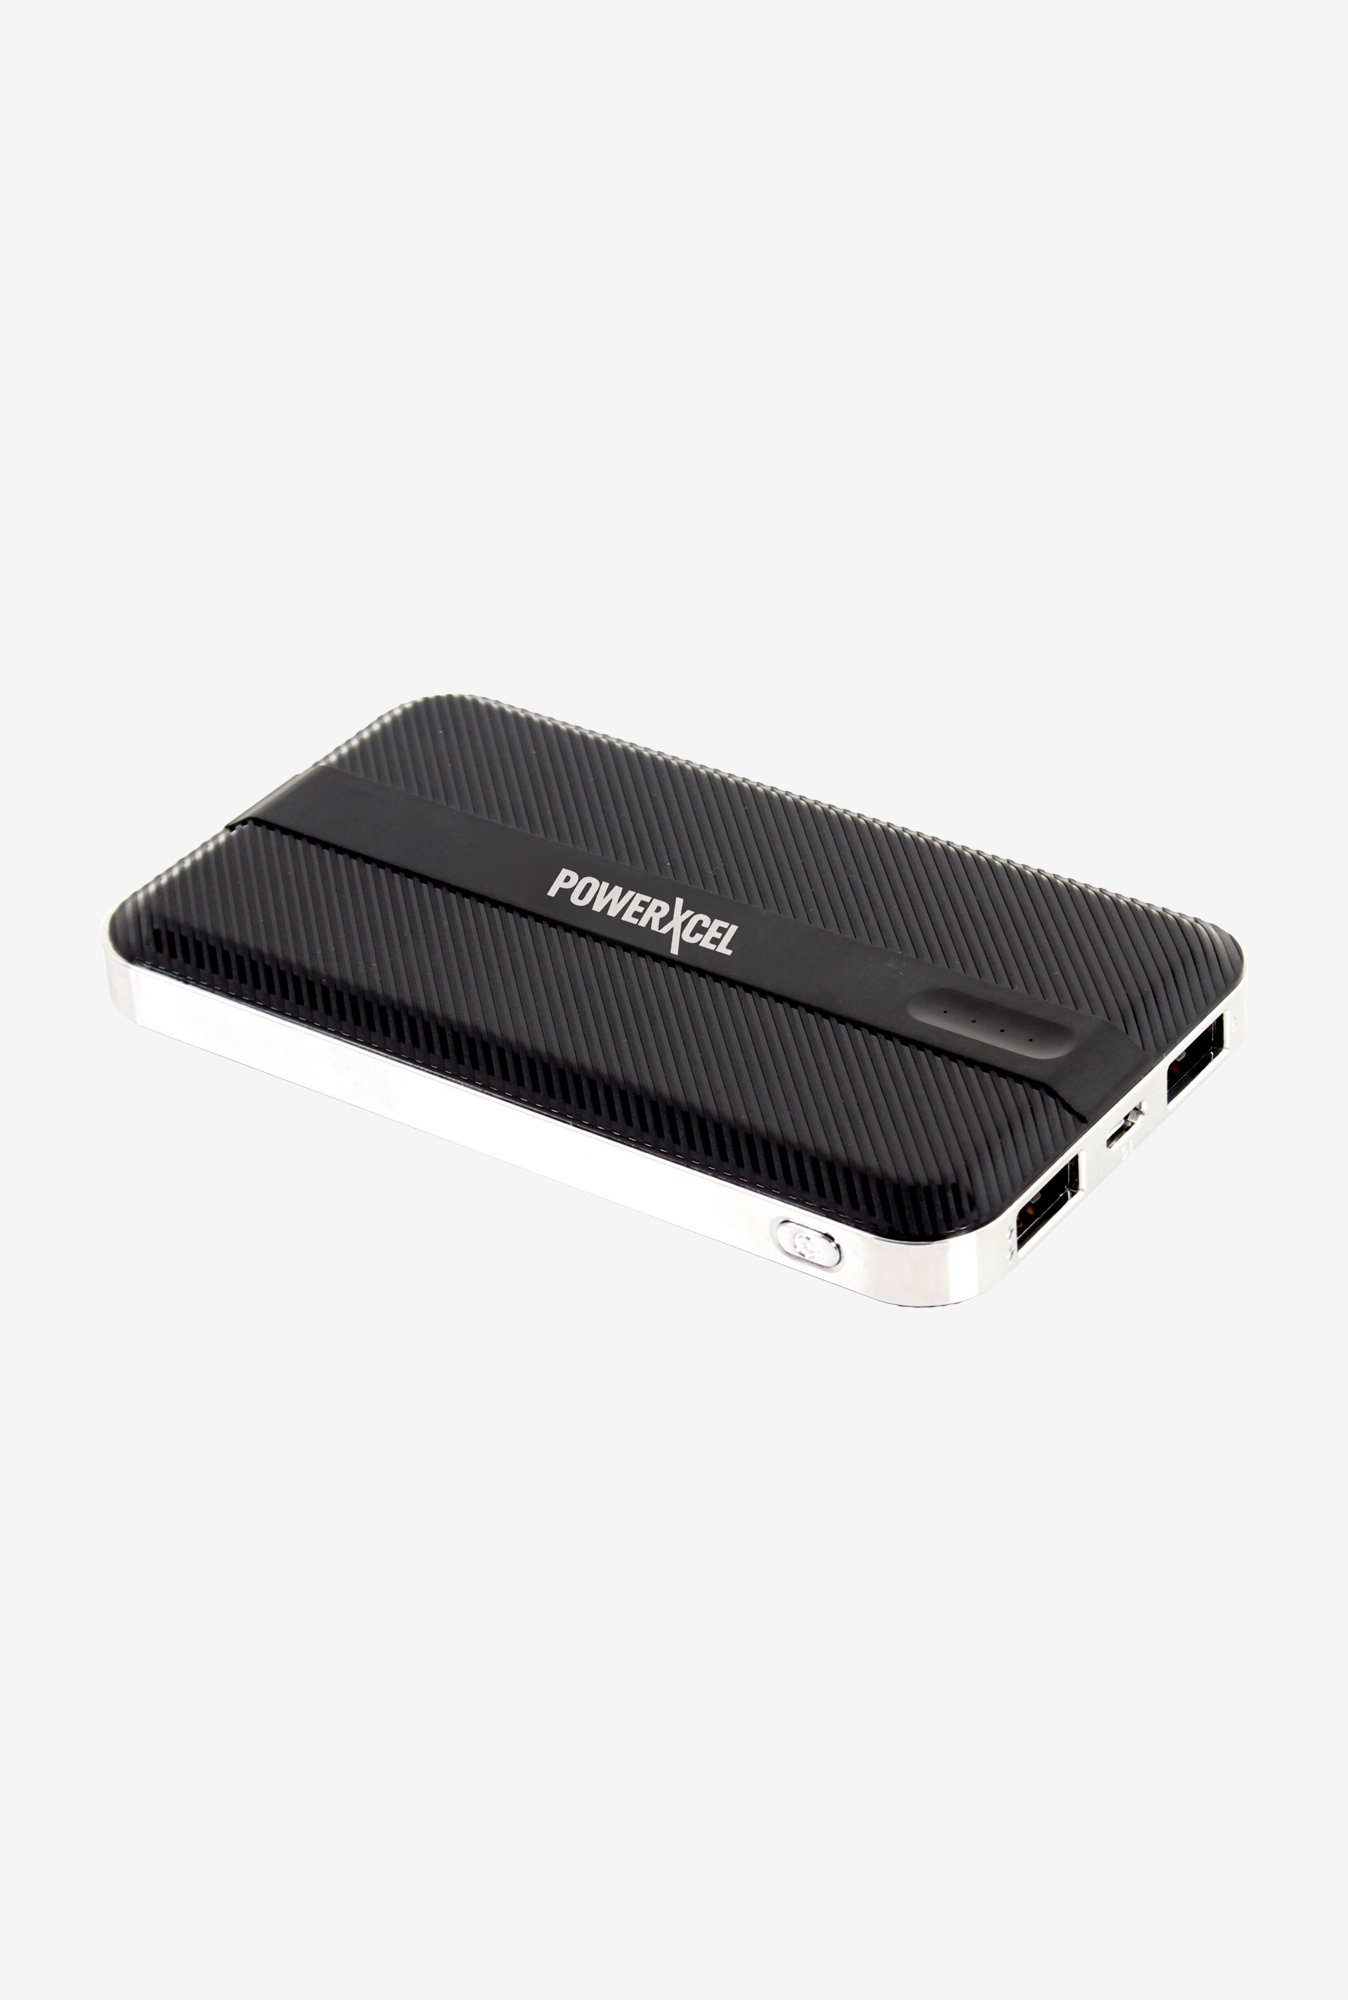 PowerXcel RBB042PX 10000 mAh Power Bank (Black)